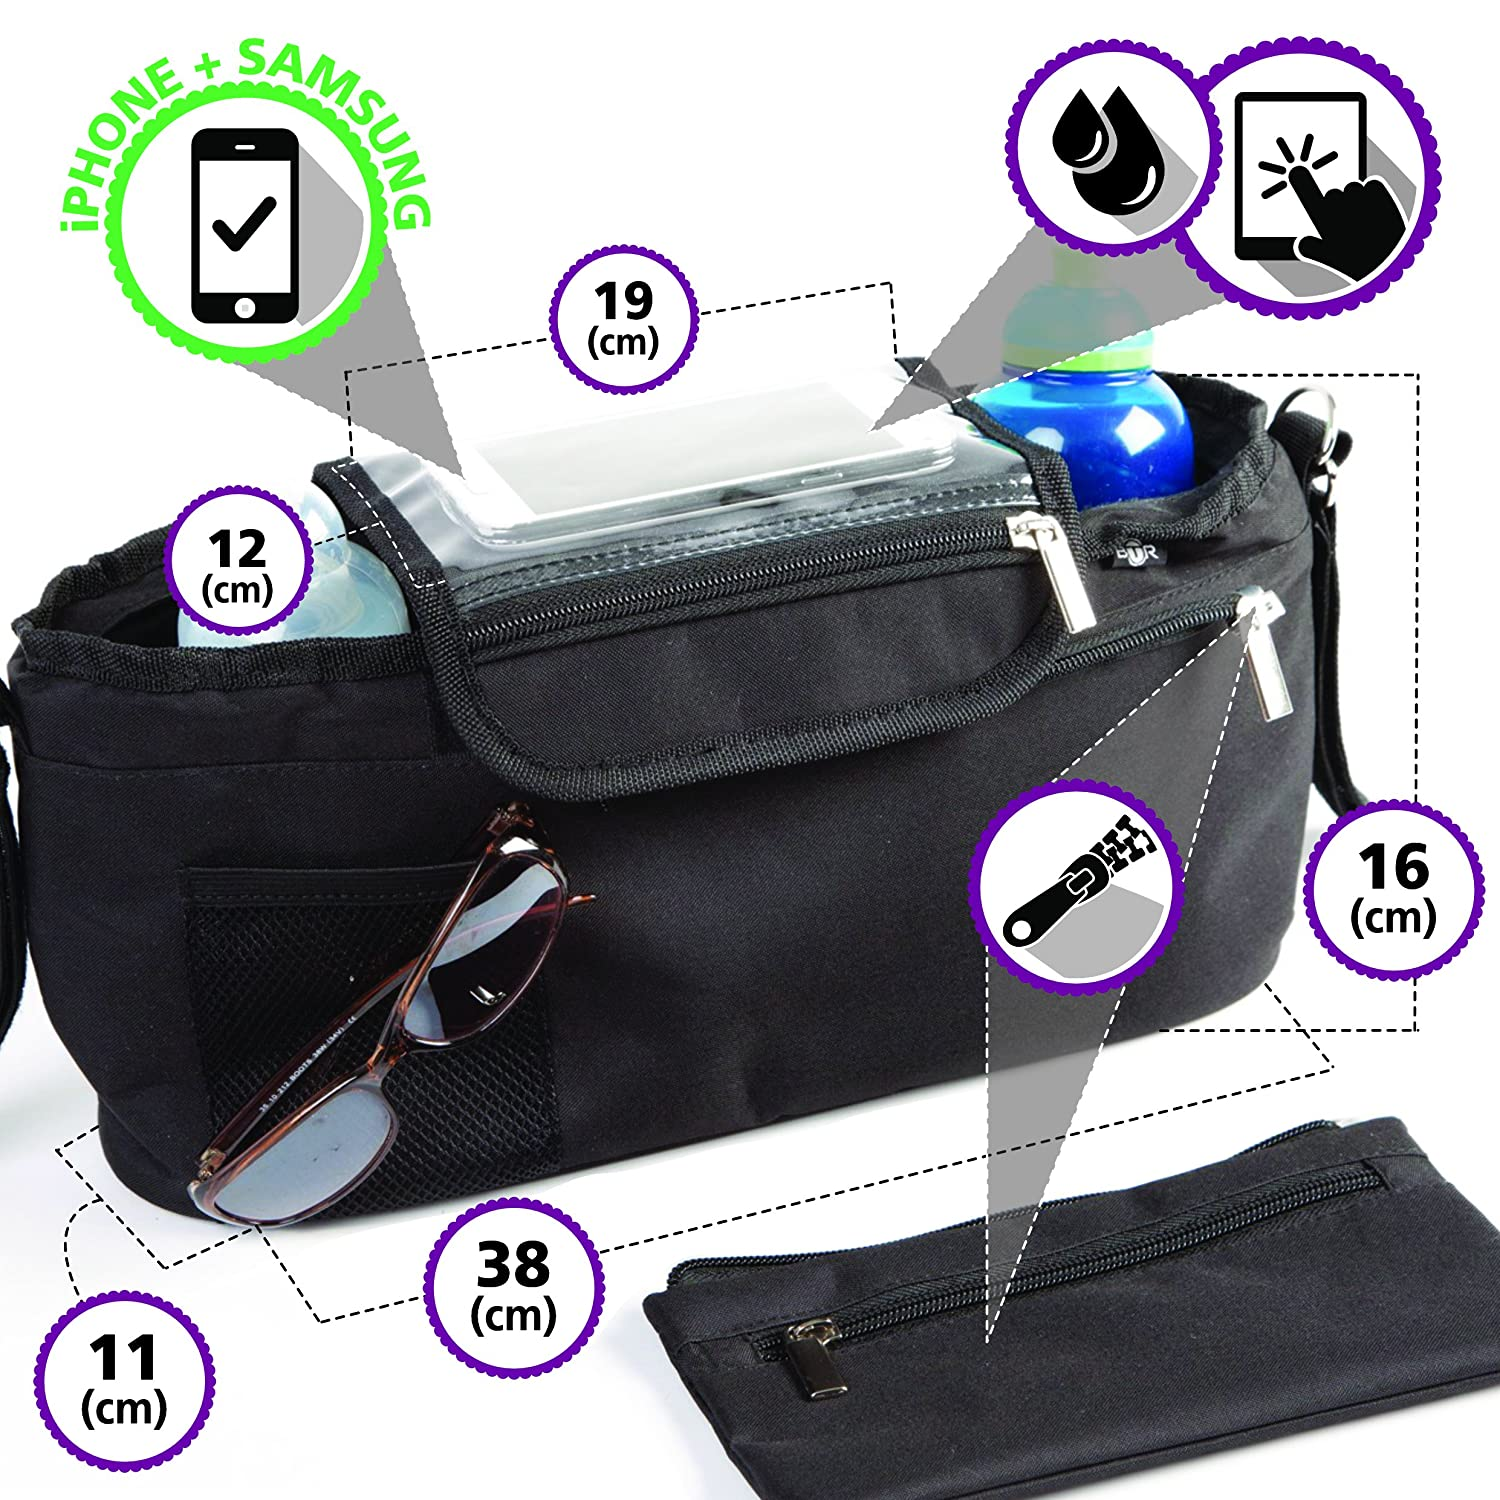 BTR Buggy Organiser Pram Bag with Detachable Purse & Mobile Phone Holder. Black BTR341